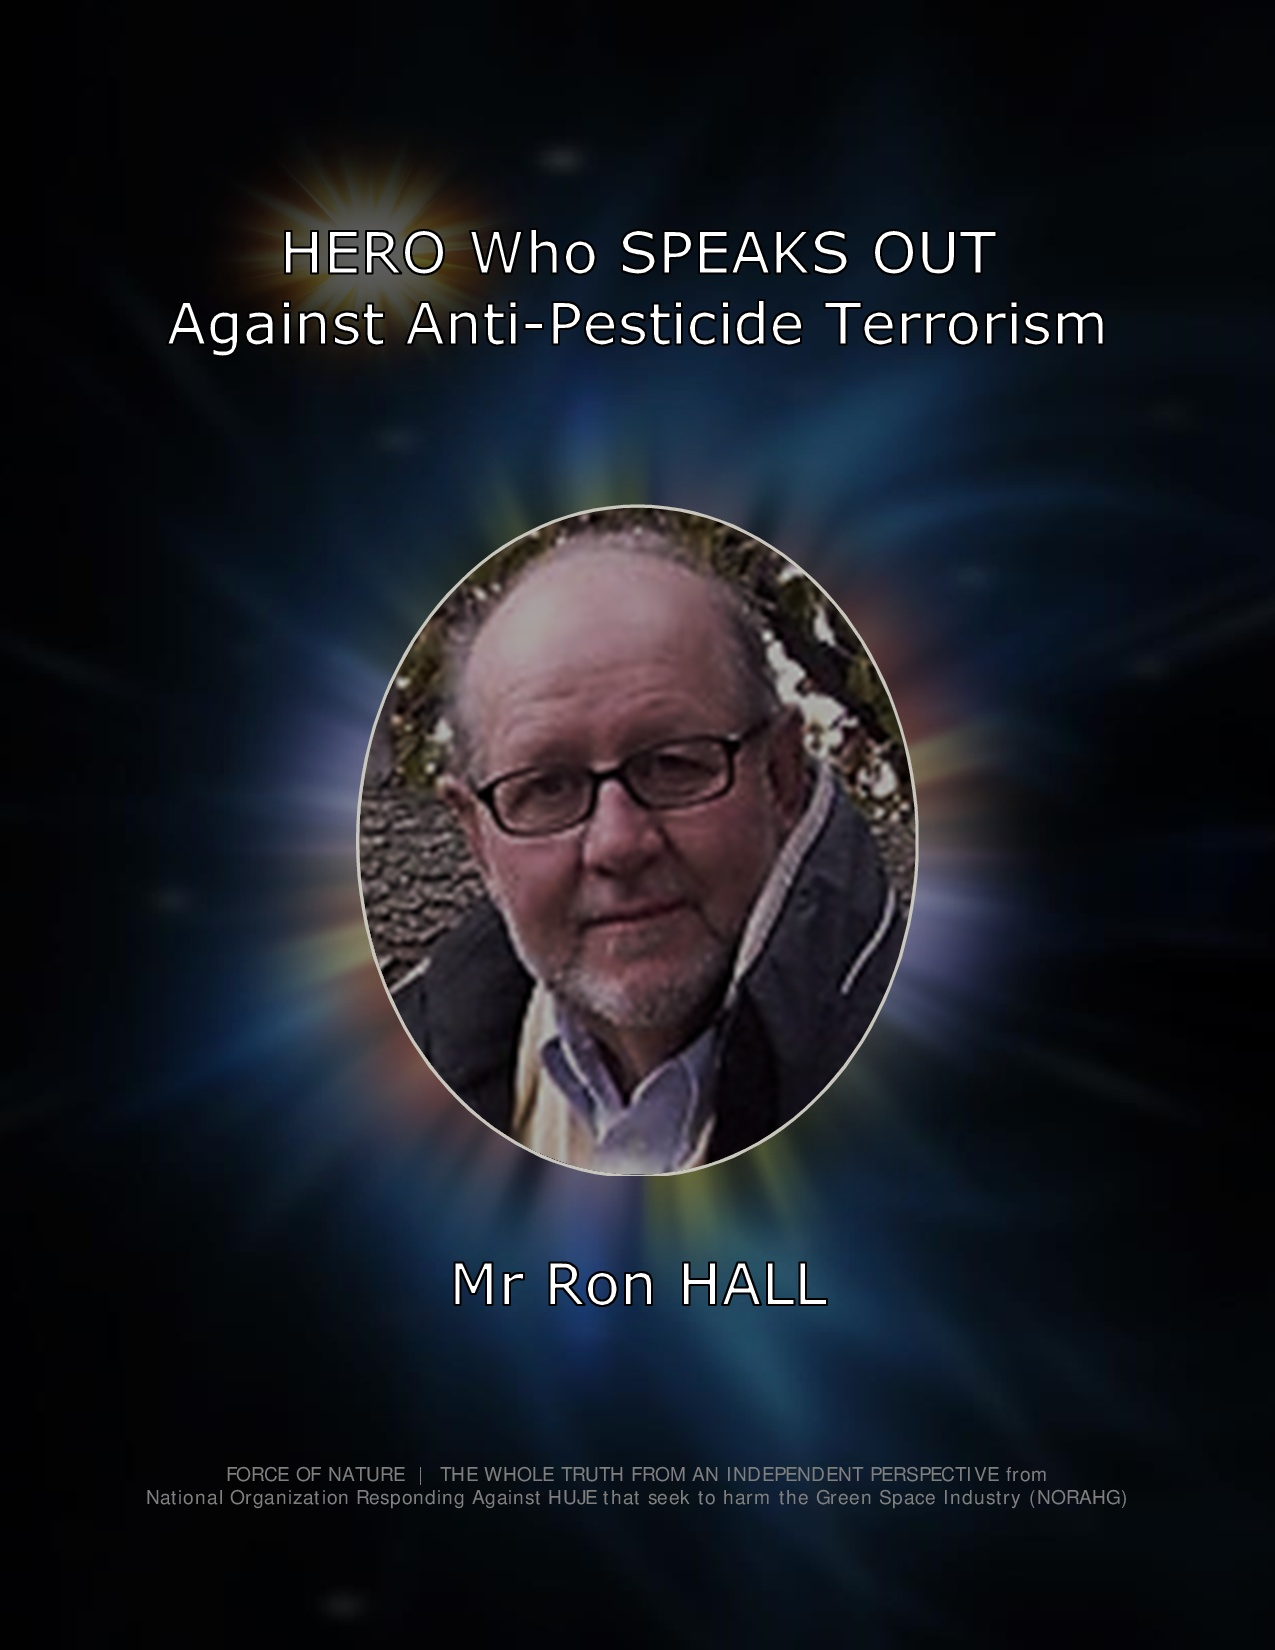 HALL, Mr Ron